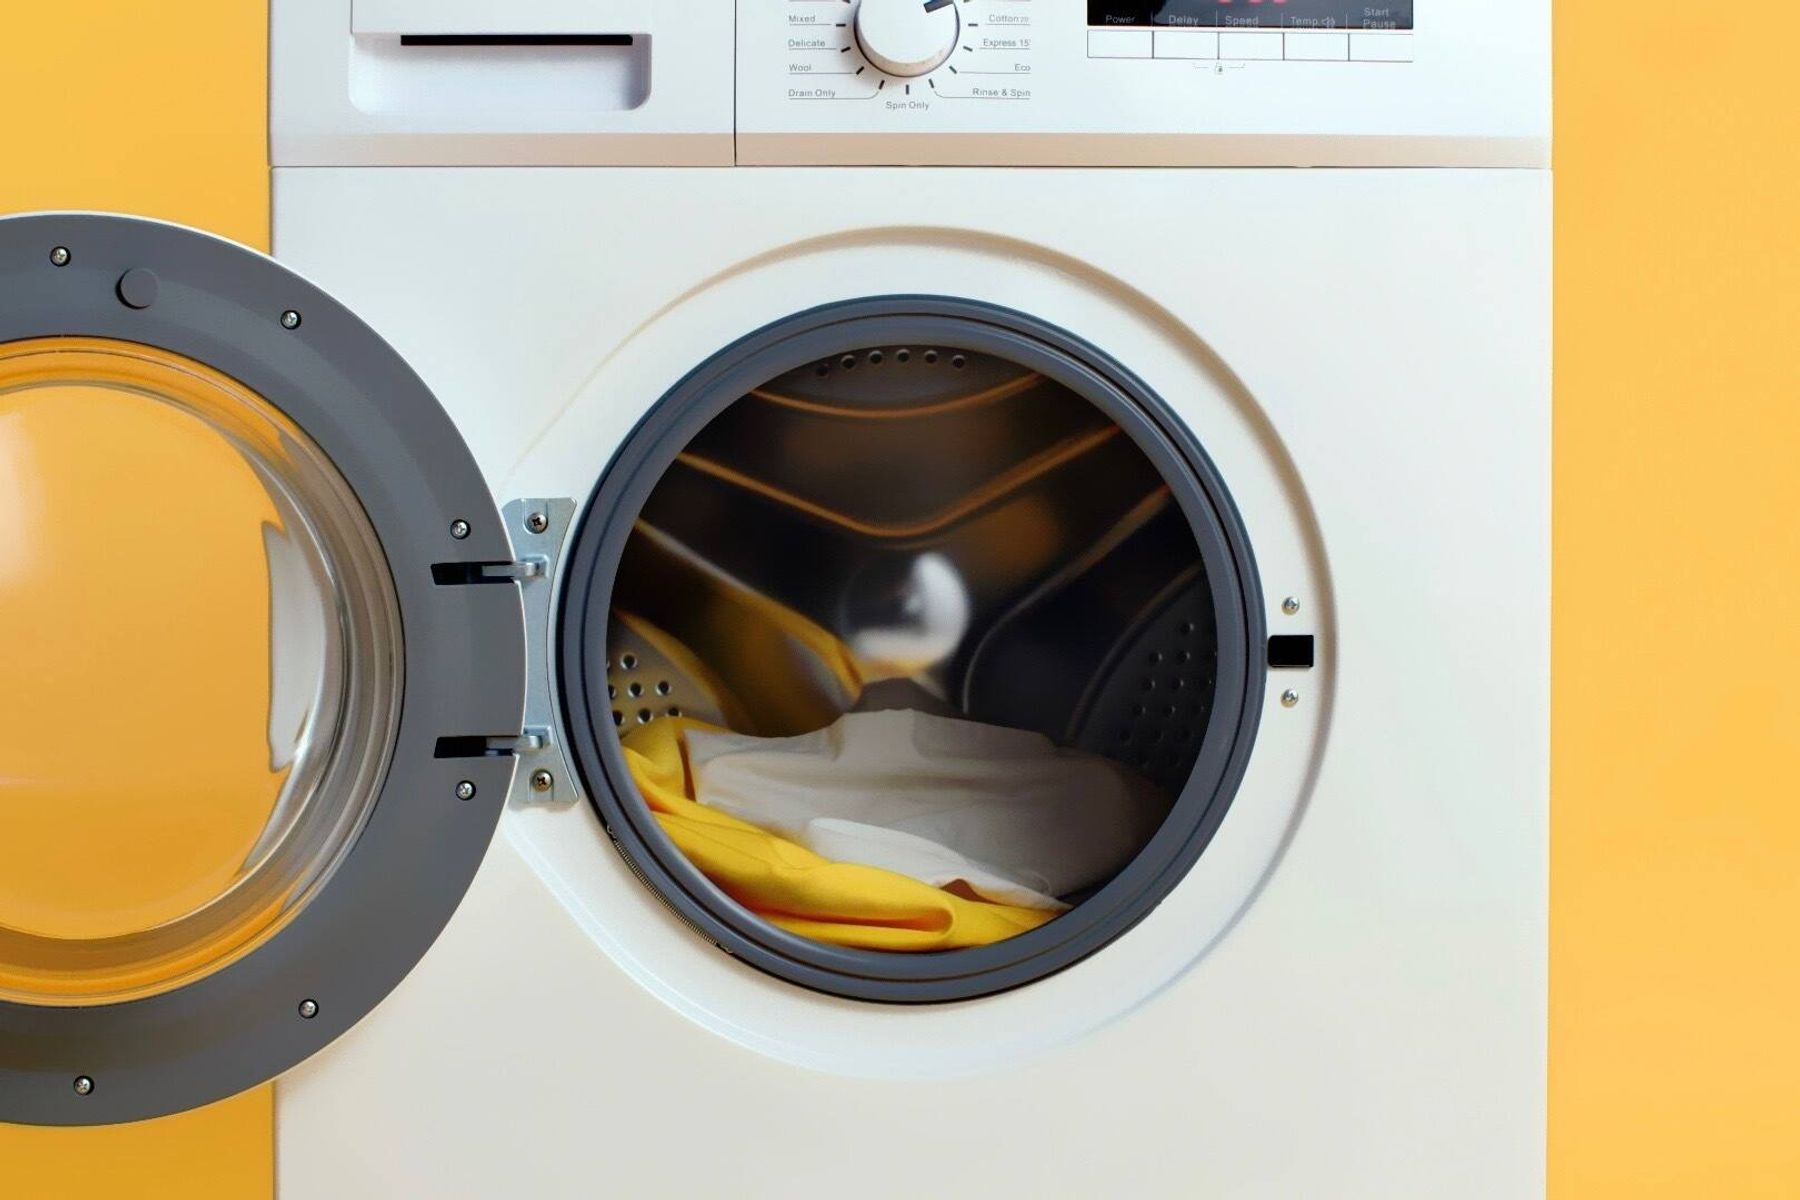 Tips to clean your washing machine and other appliances properly